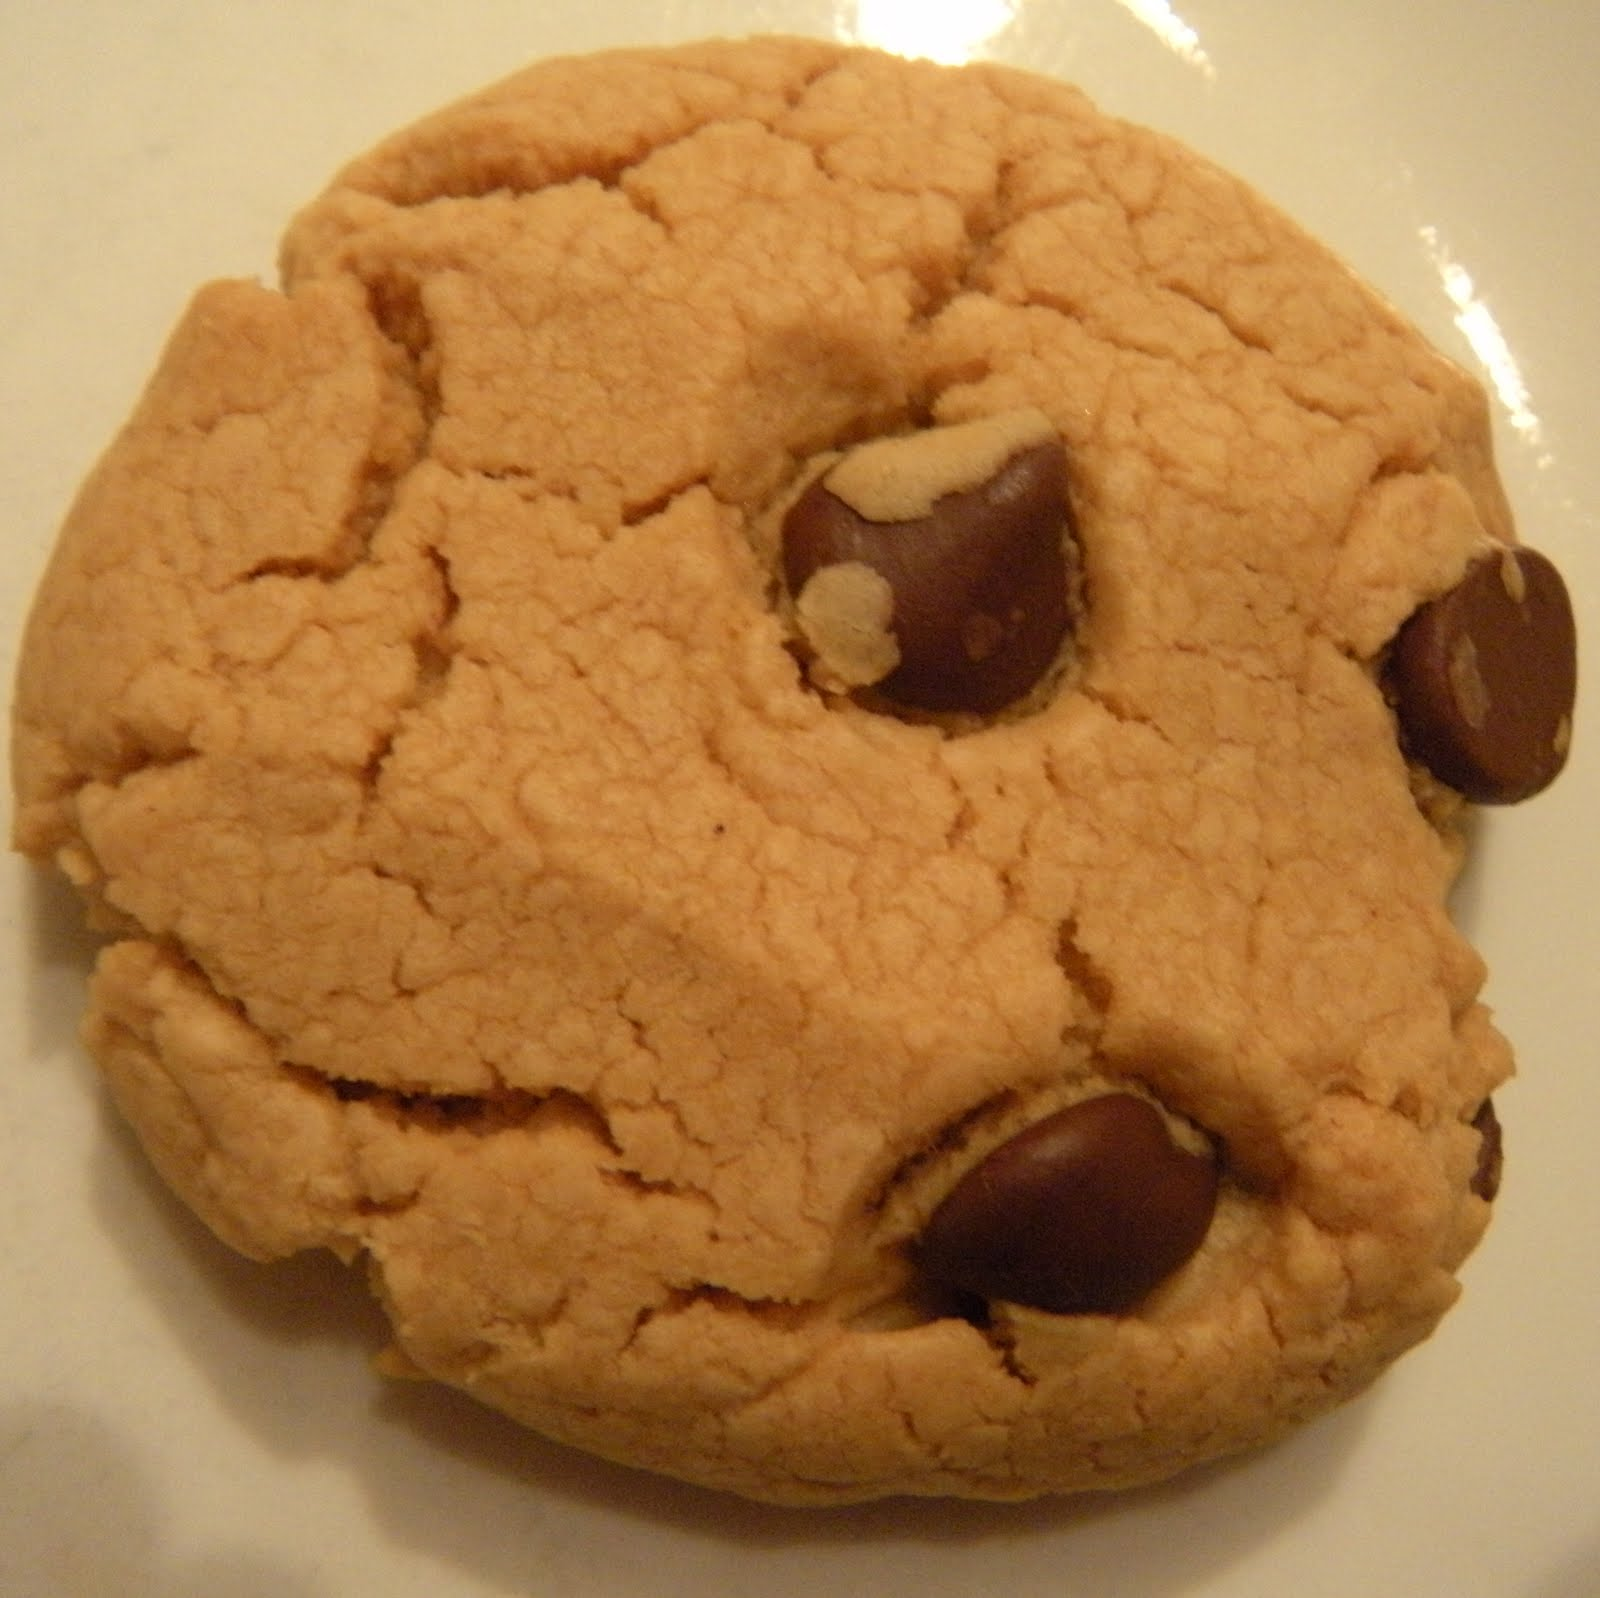 ... Makin' Now?: Peanut Butter Chocolate Chip Cookies (5 Ingredients